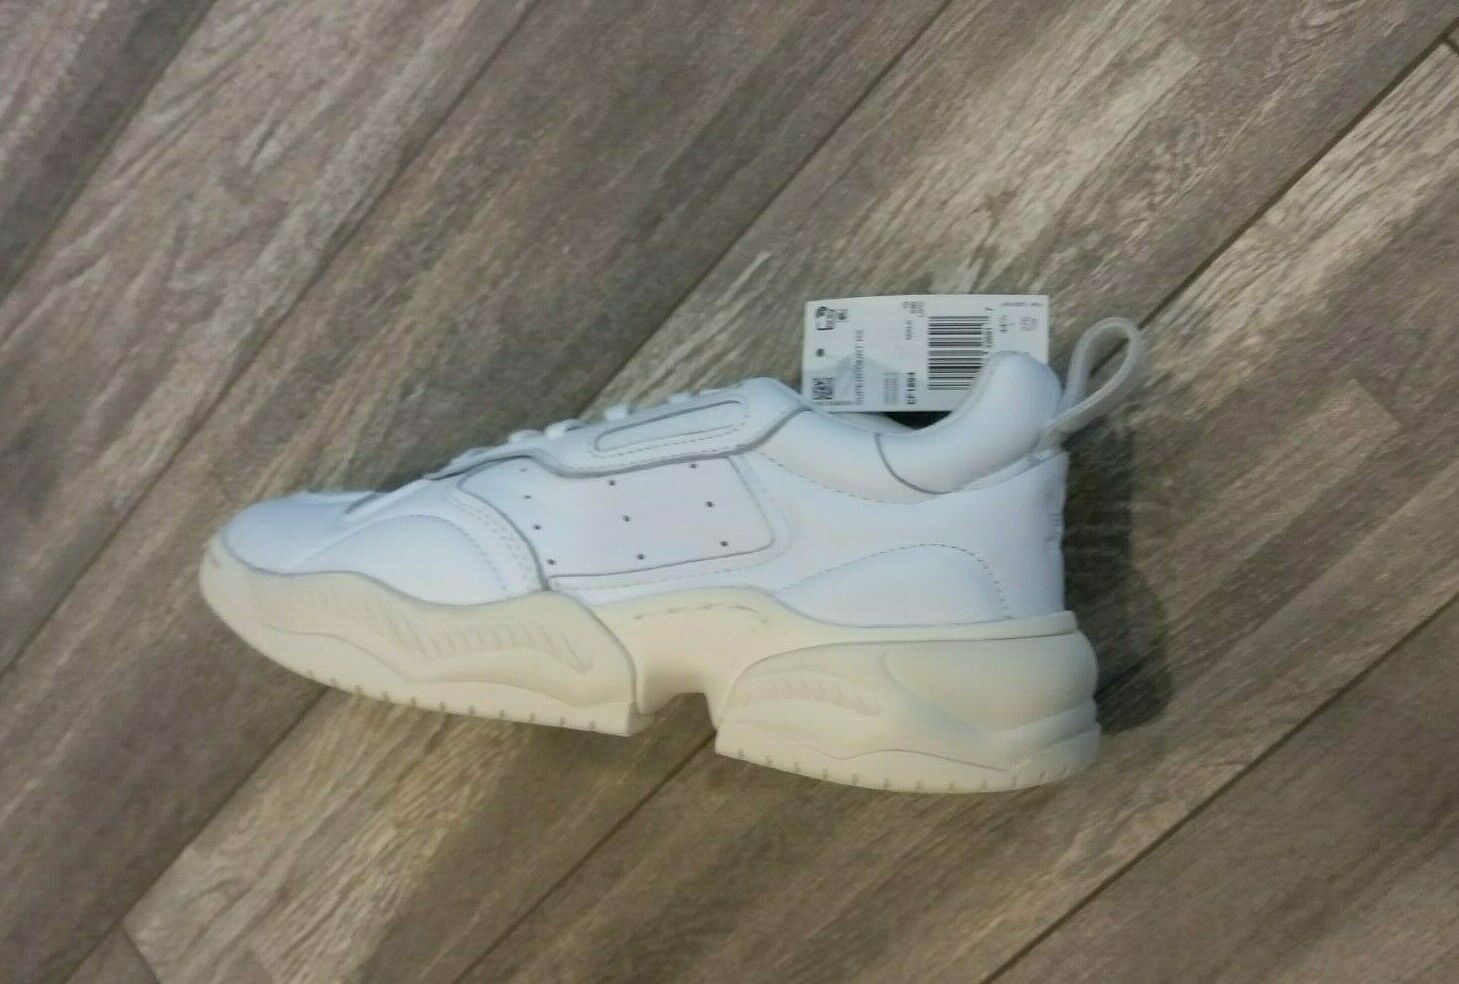 Primary image for Adidas  Supercourt RX Casual White Crystal Shoes EF1894 Men's Size 10.5